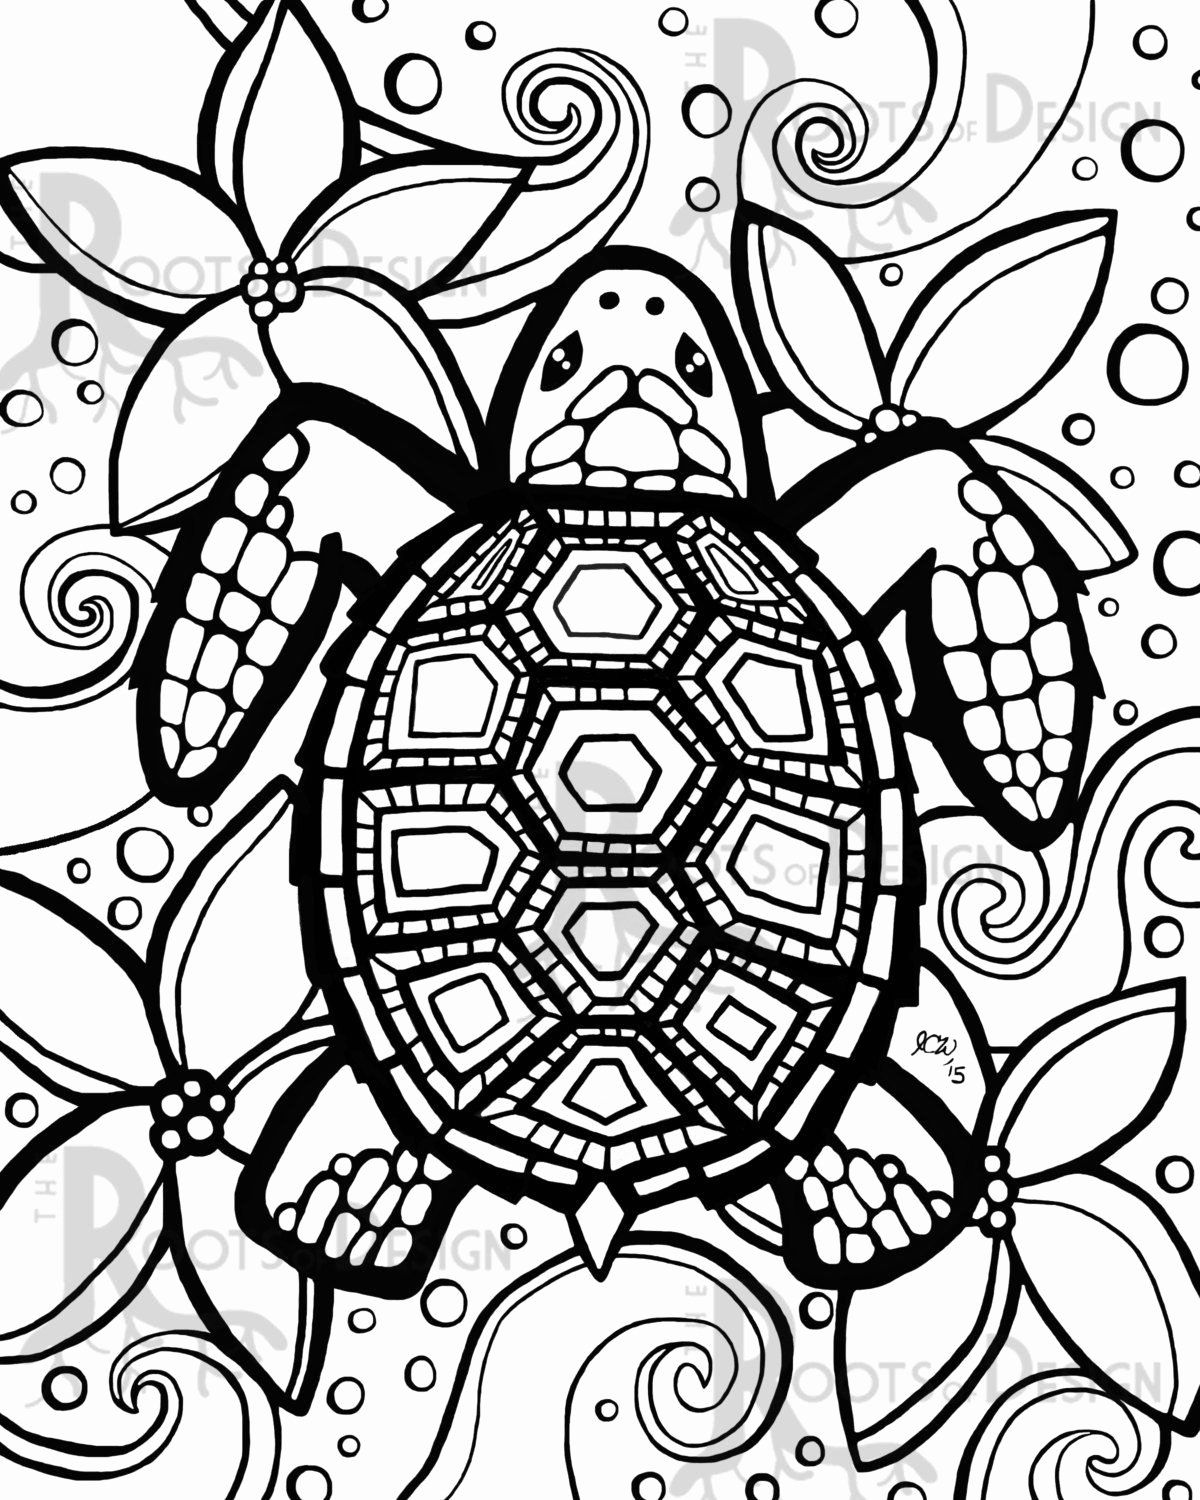 Pin By Oktariana Coloring Worksheet On Cartoon Turtle Coloring Pages Animal Coloring Pages Coloring Pages For Kids